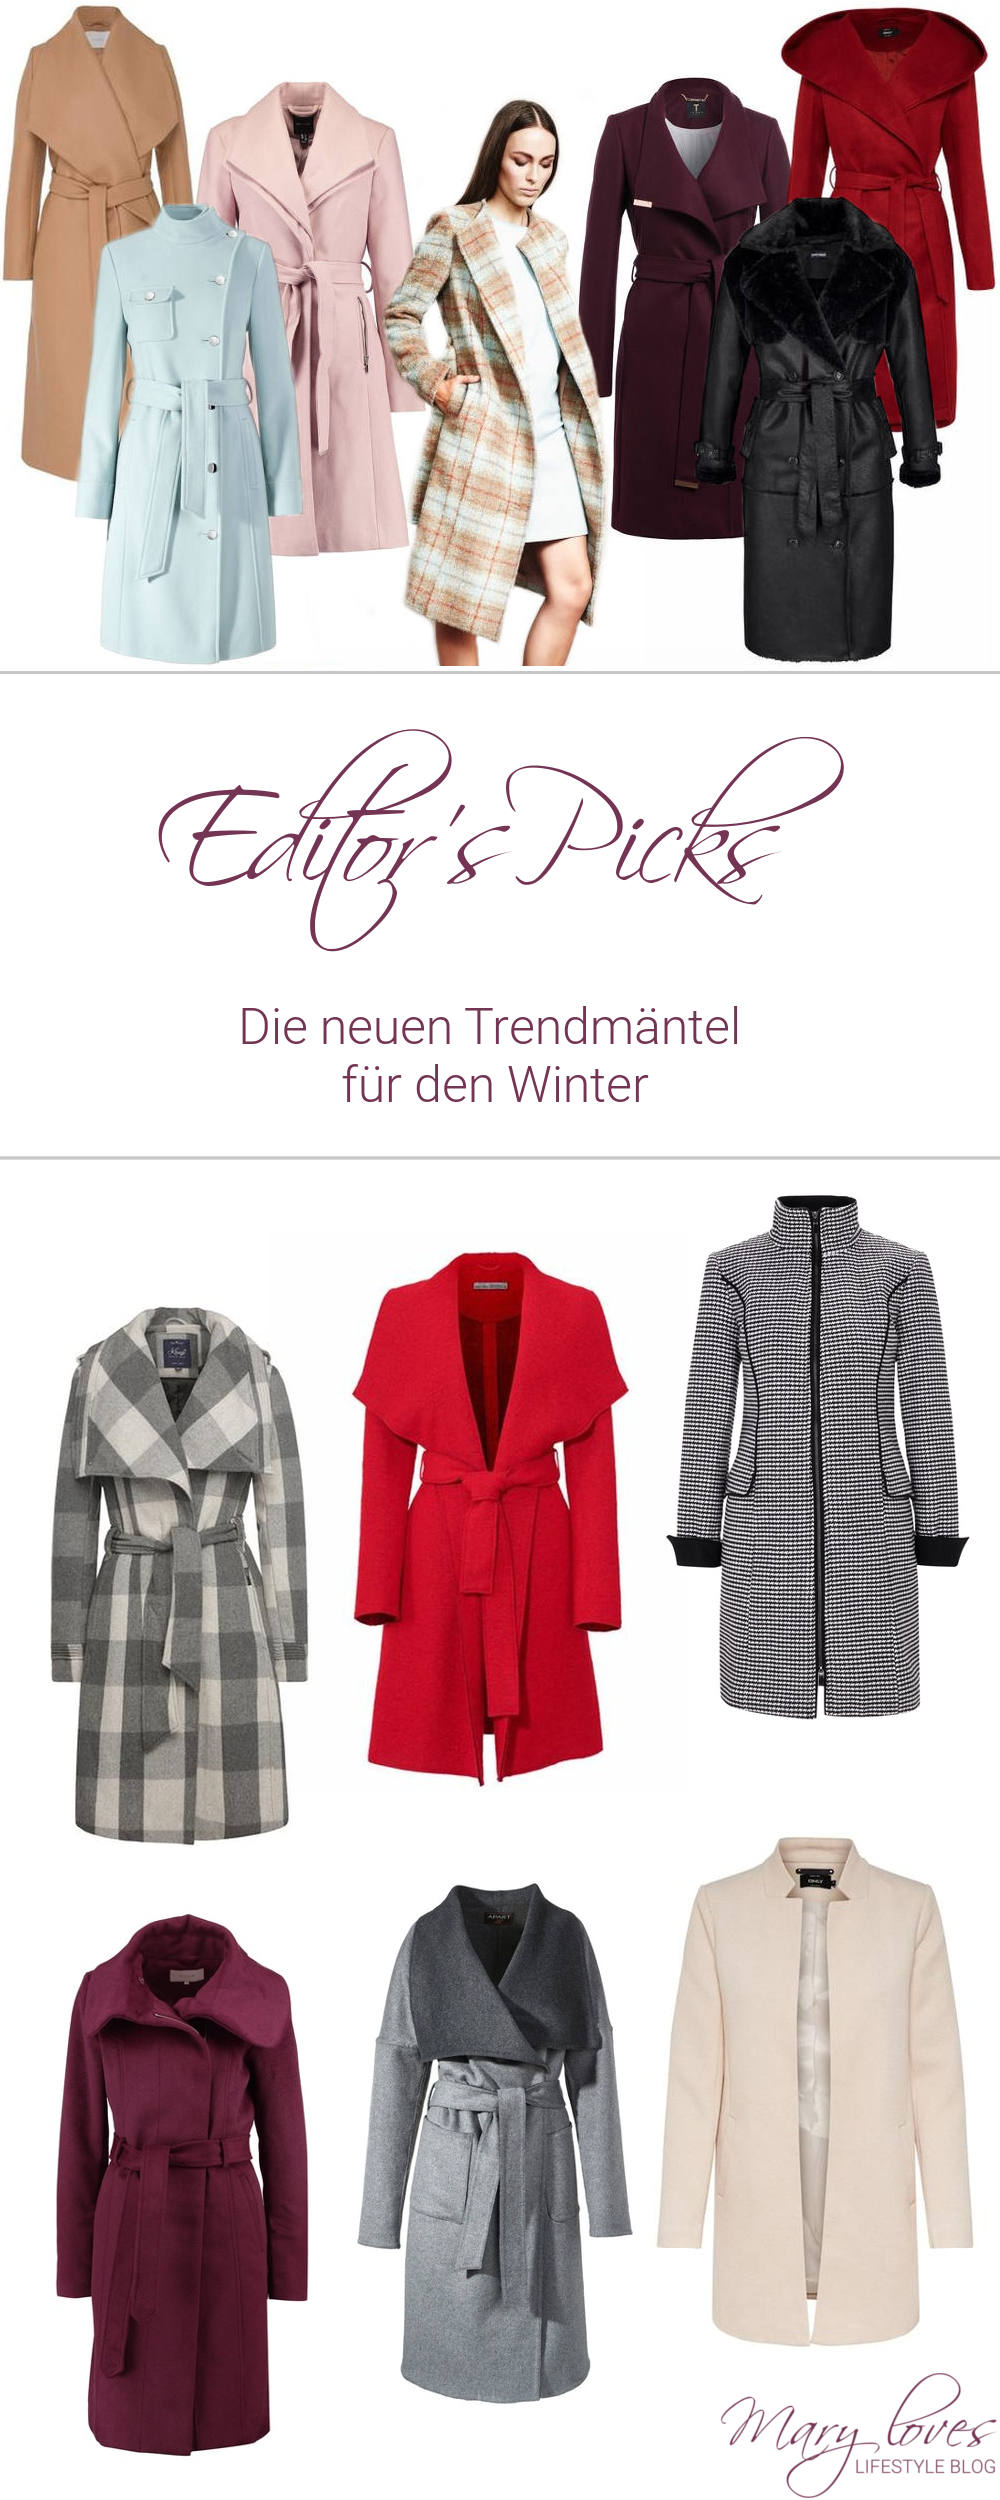 Das sind die Mantel Trends Winter 2017-2018 - Editor's Picks Trendmäntel #mantel #manteltrends #trendmäntel #coat #modetrends #wintermode